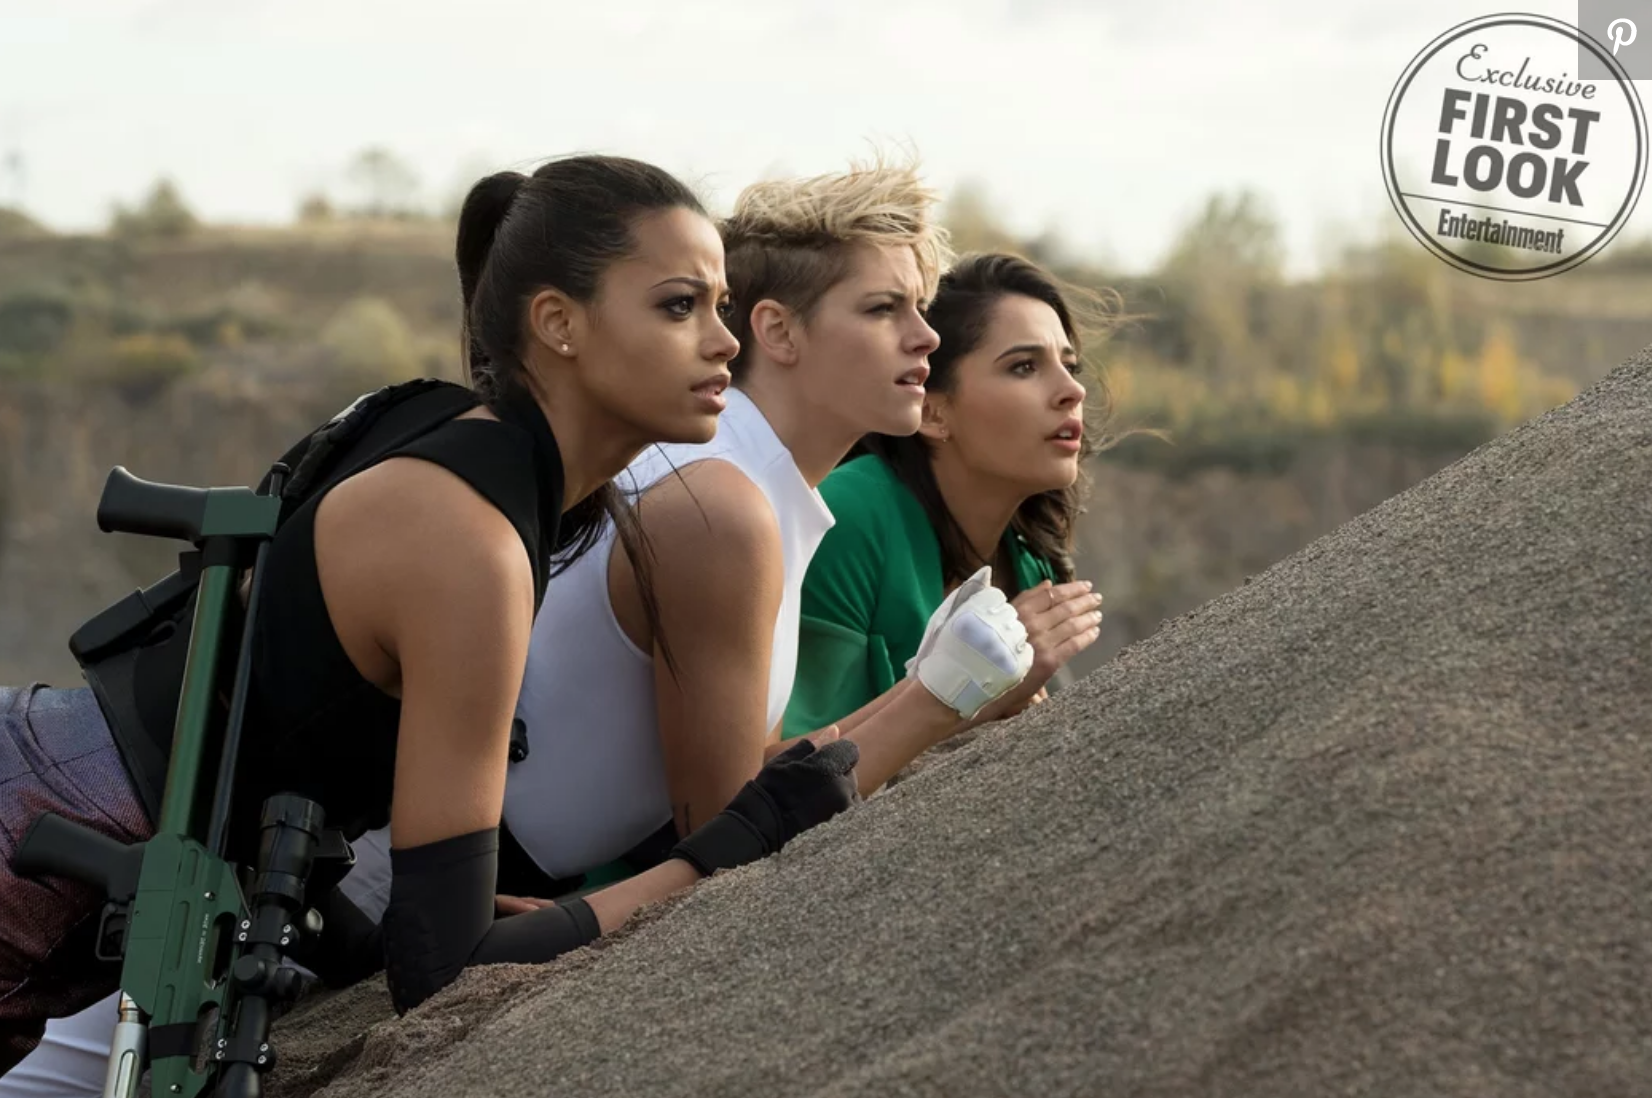 Kristin Stewart, Naomi Scott and Ella Balinski on a mission